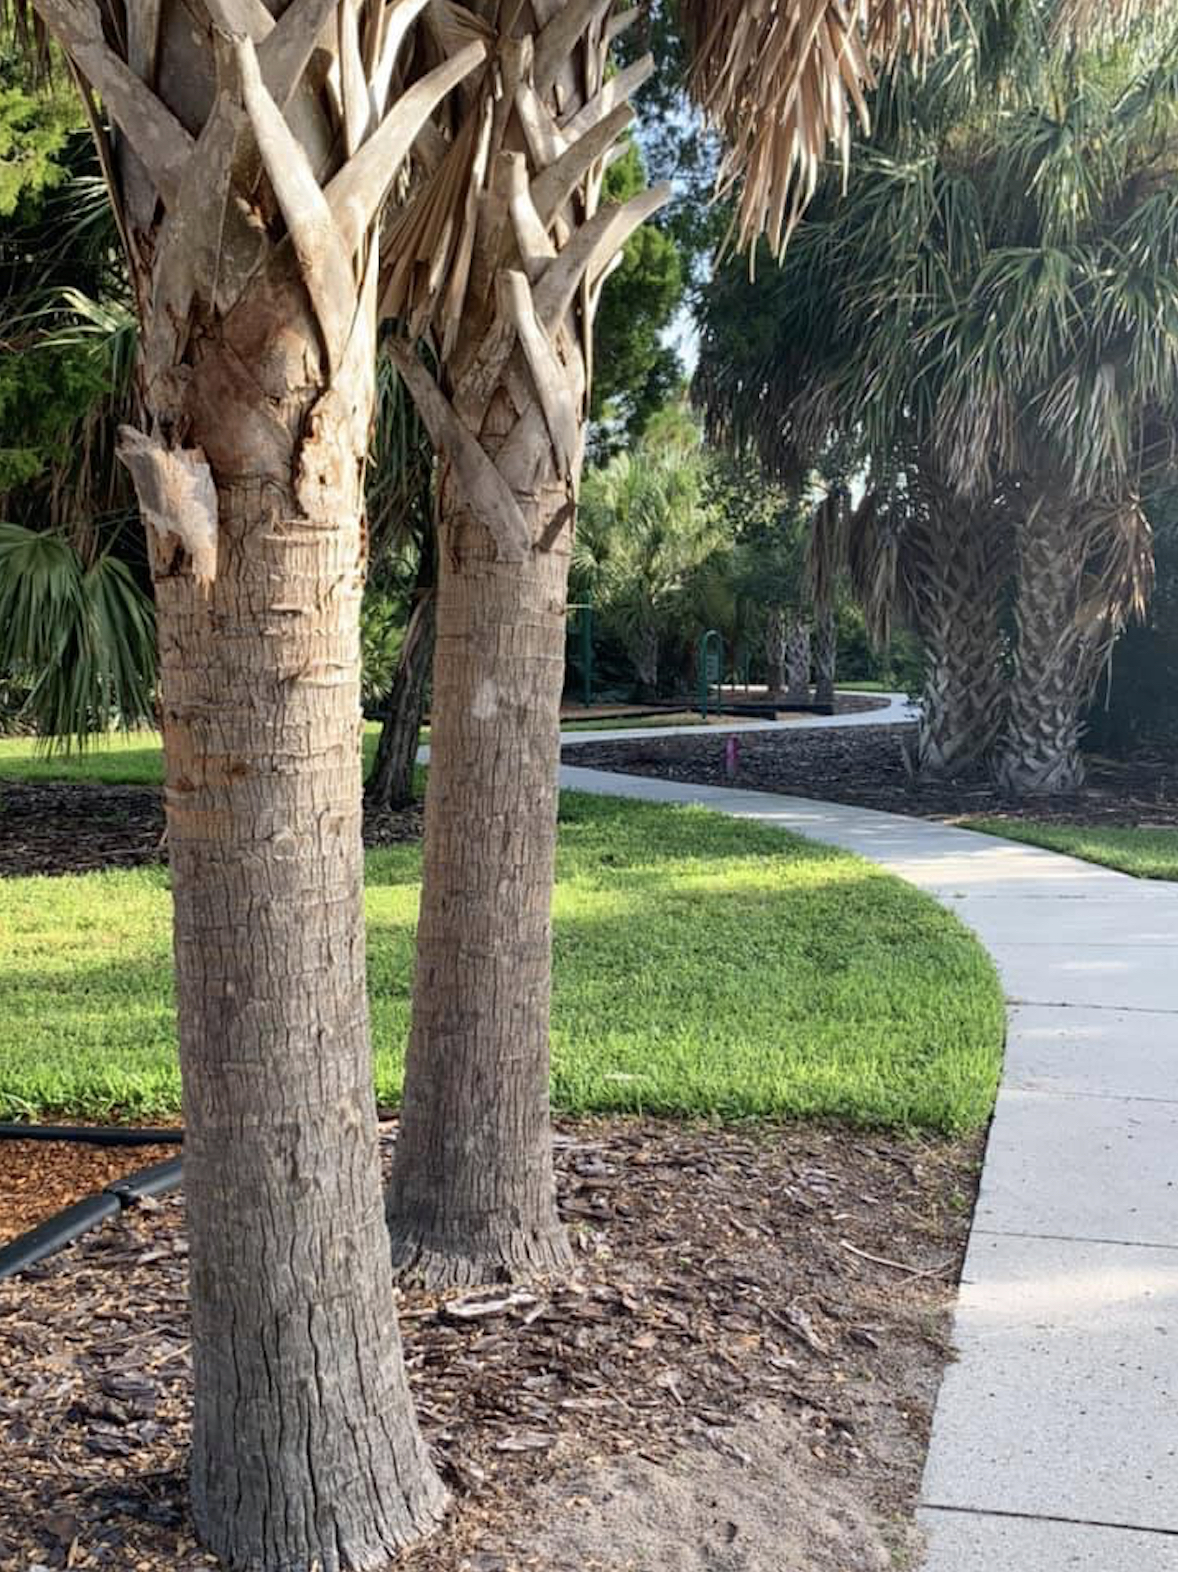 A photo of a path through a park with palm trees in the foreground.